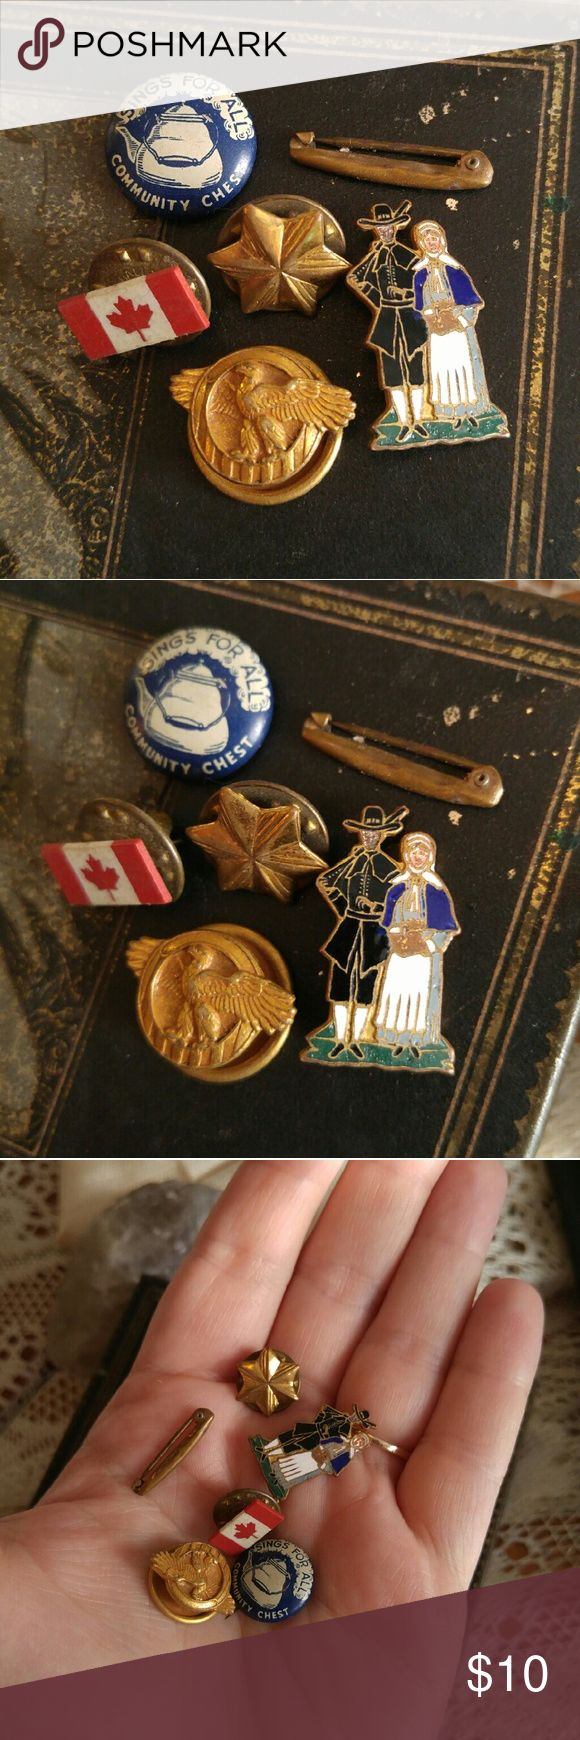 Bunch of little old pins - military enamel antique Cool bunch of interesting tiny pins, made different eras ranging from 1910s to 1970s - pilgrim couple enamel on brass, C clasp - Canada flag - eagle collar button -star pin- lingerie pin c clasp - Community Chest Sings for All button pin with teapot - all are in good shape though may show age patina to metal and light surface wear - from a smoke free home :) Price firm unless bundled  MAUSA88388PINS888 Vintage Jewelry Brooches